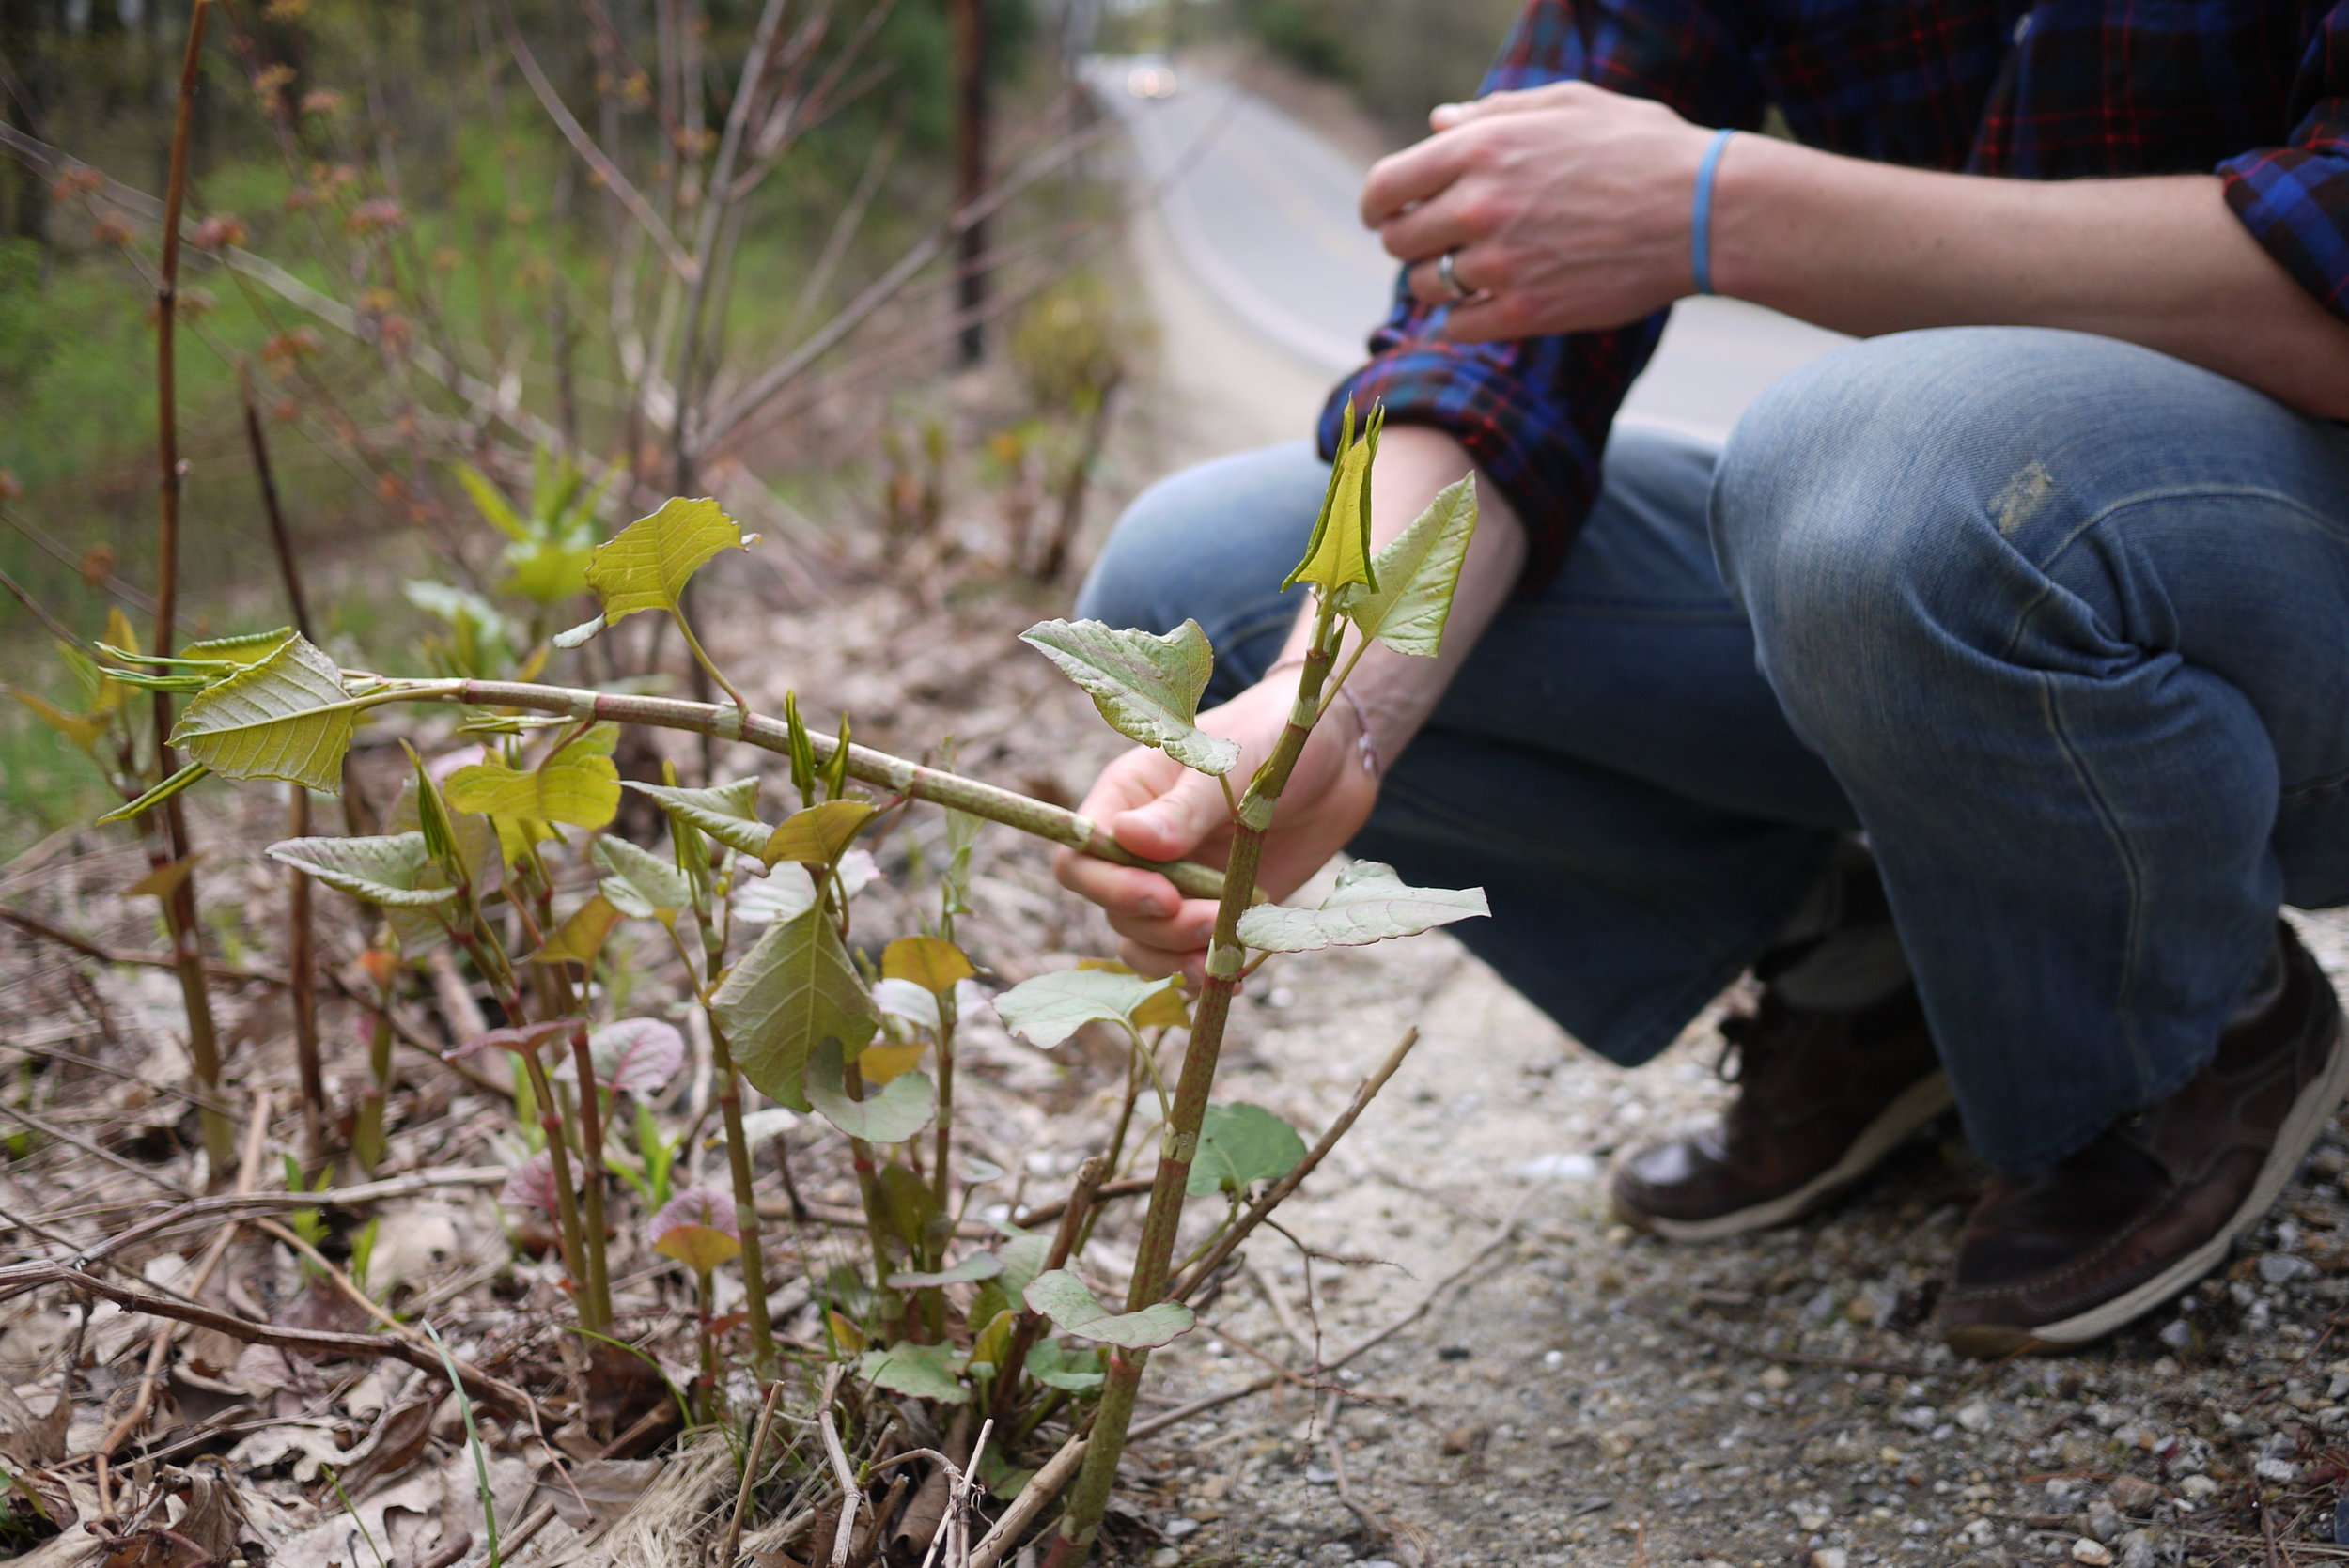 Japanese knotweed growing along side a road in Concord, NH | Photo: Logan Shannon